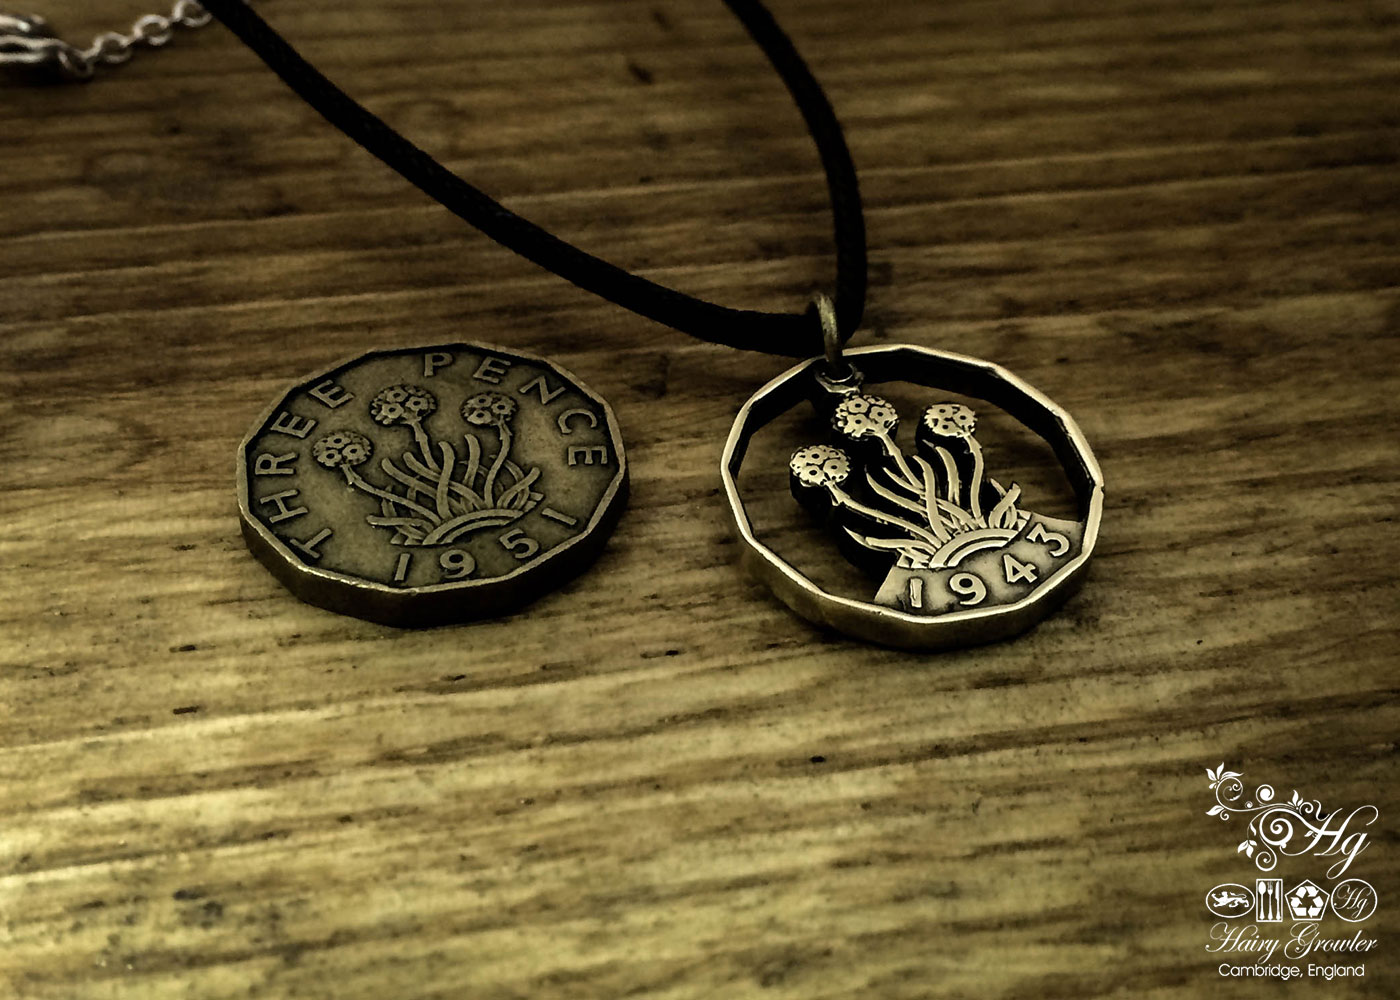 Handcrafted and recycled threepence thrupney bit coin pendant necklace